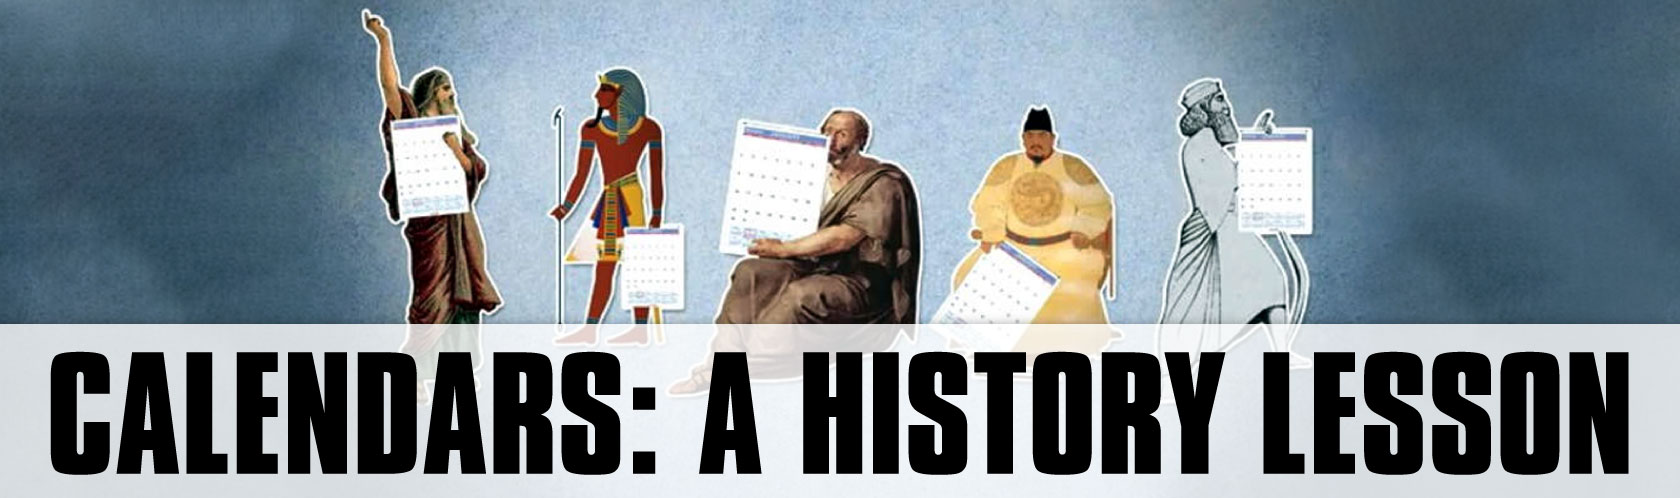 Calendars: A History Lesson